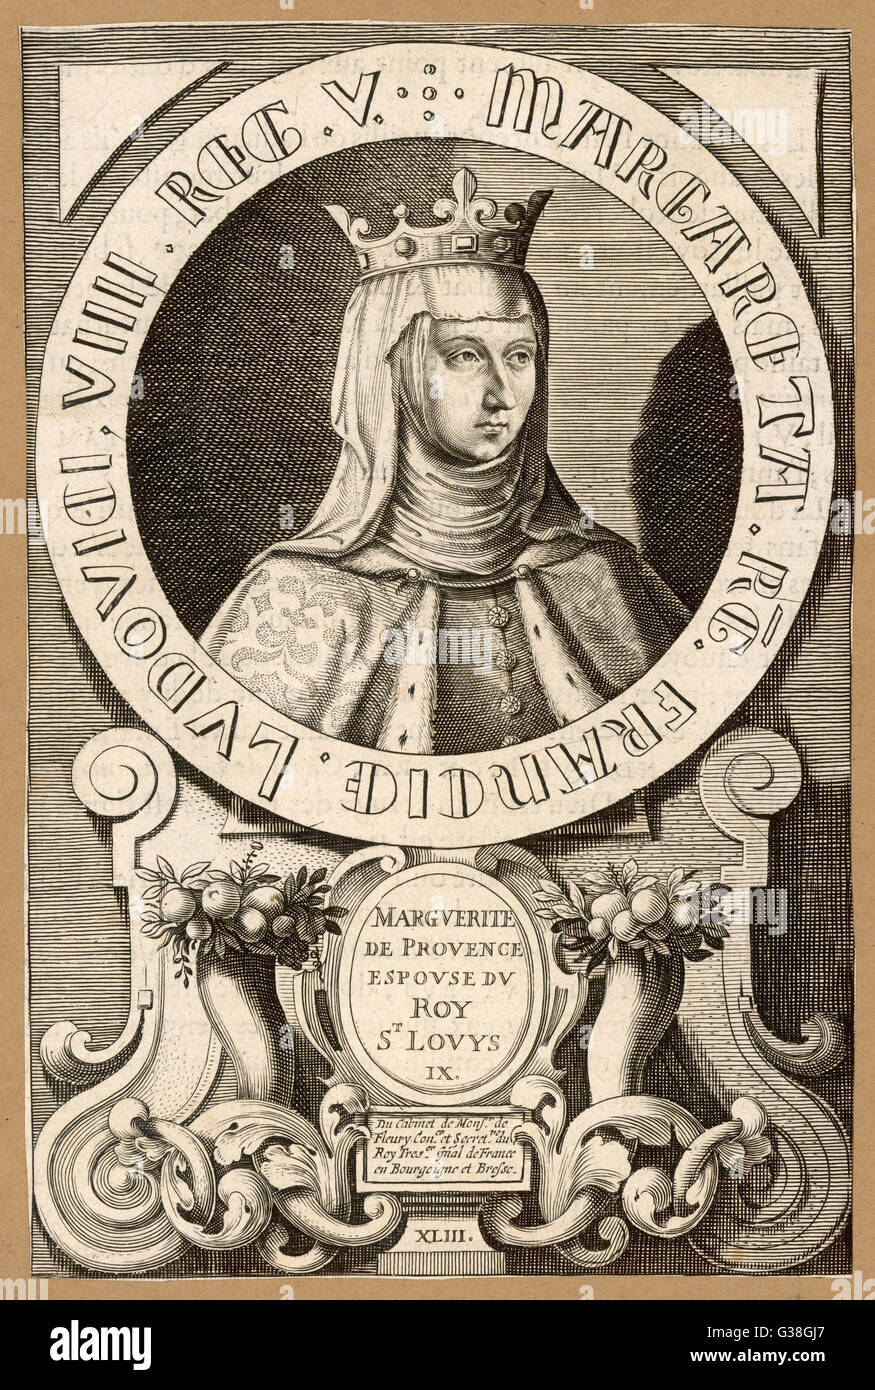 MARGUERITE DE PROVENCE queen of Louis IX,  king of France        Date: 1221 - 1295 - Stock Image